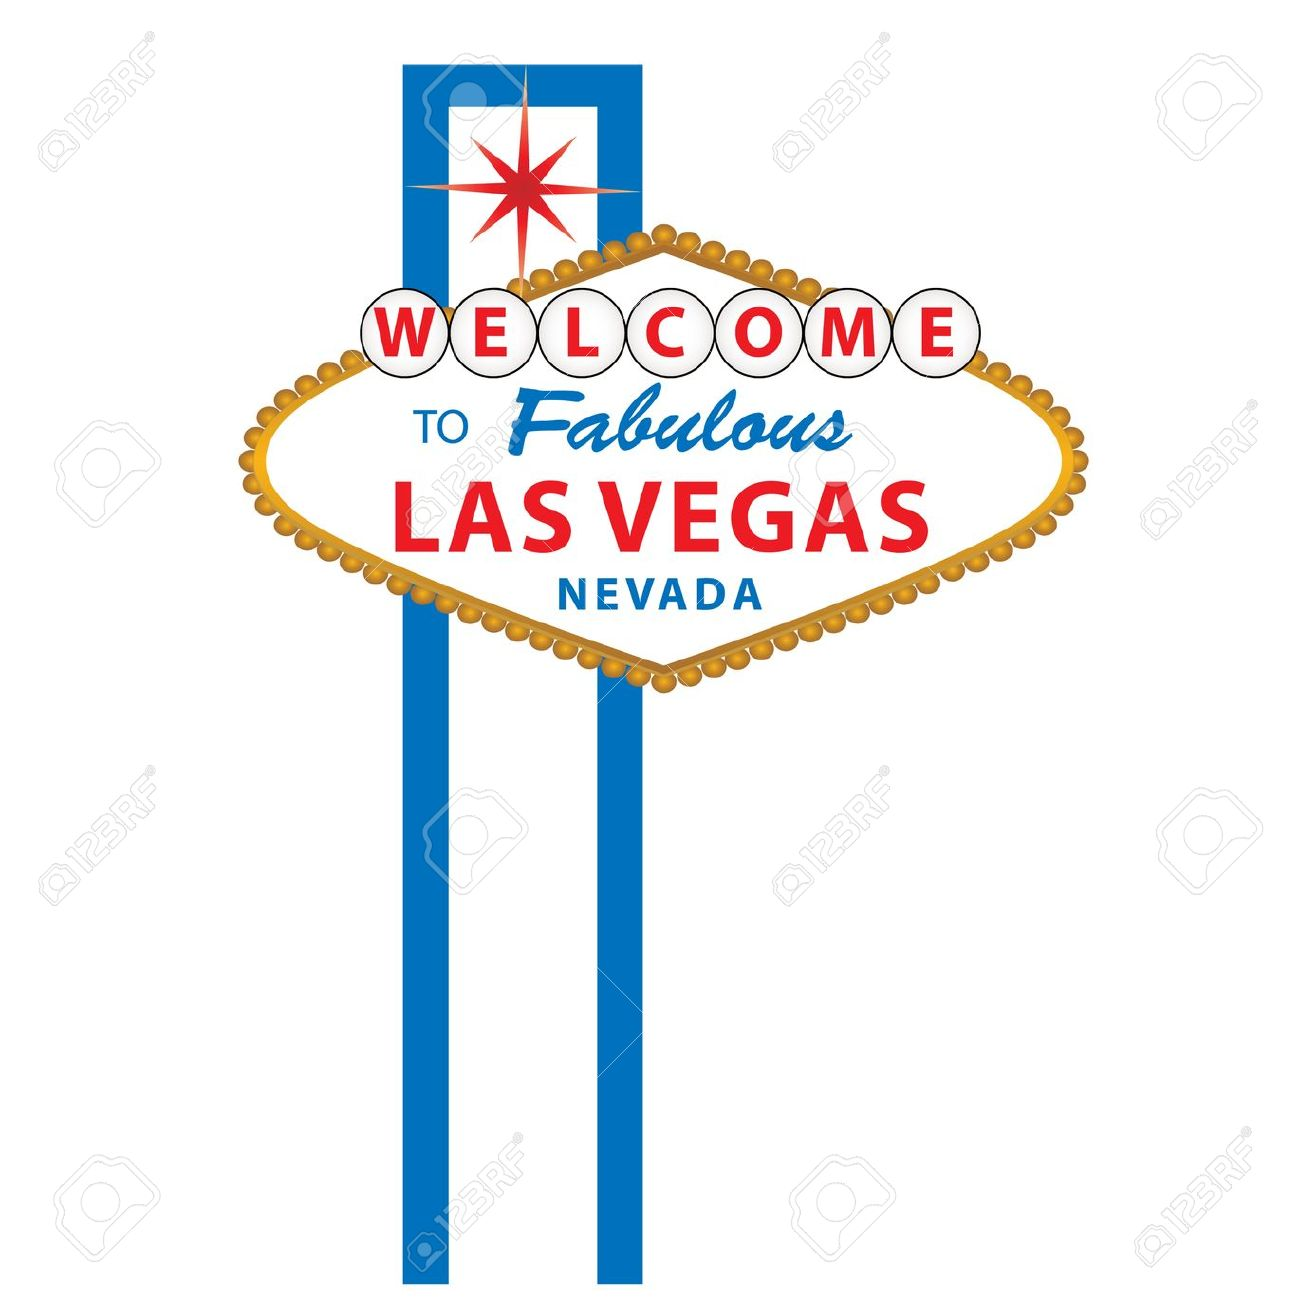 las vegas: Welcome to Fabulous .-las vegas: Welcome to Fabulous .-6